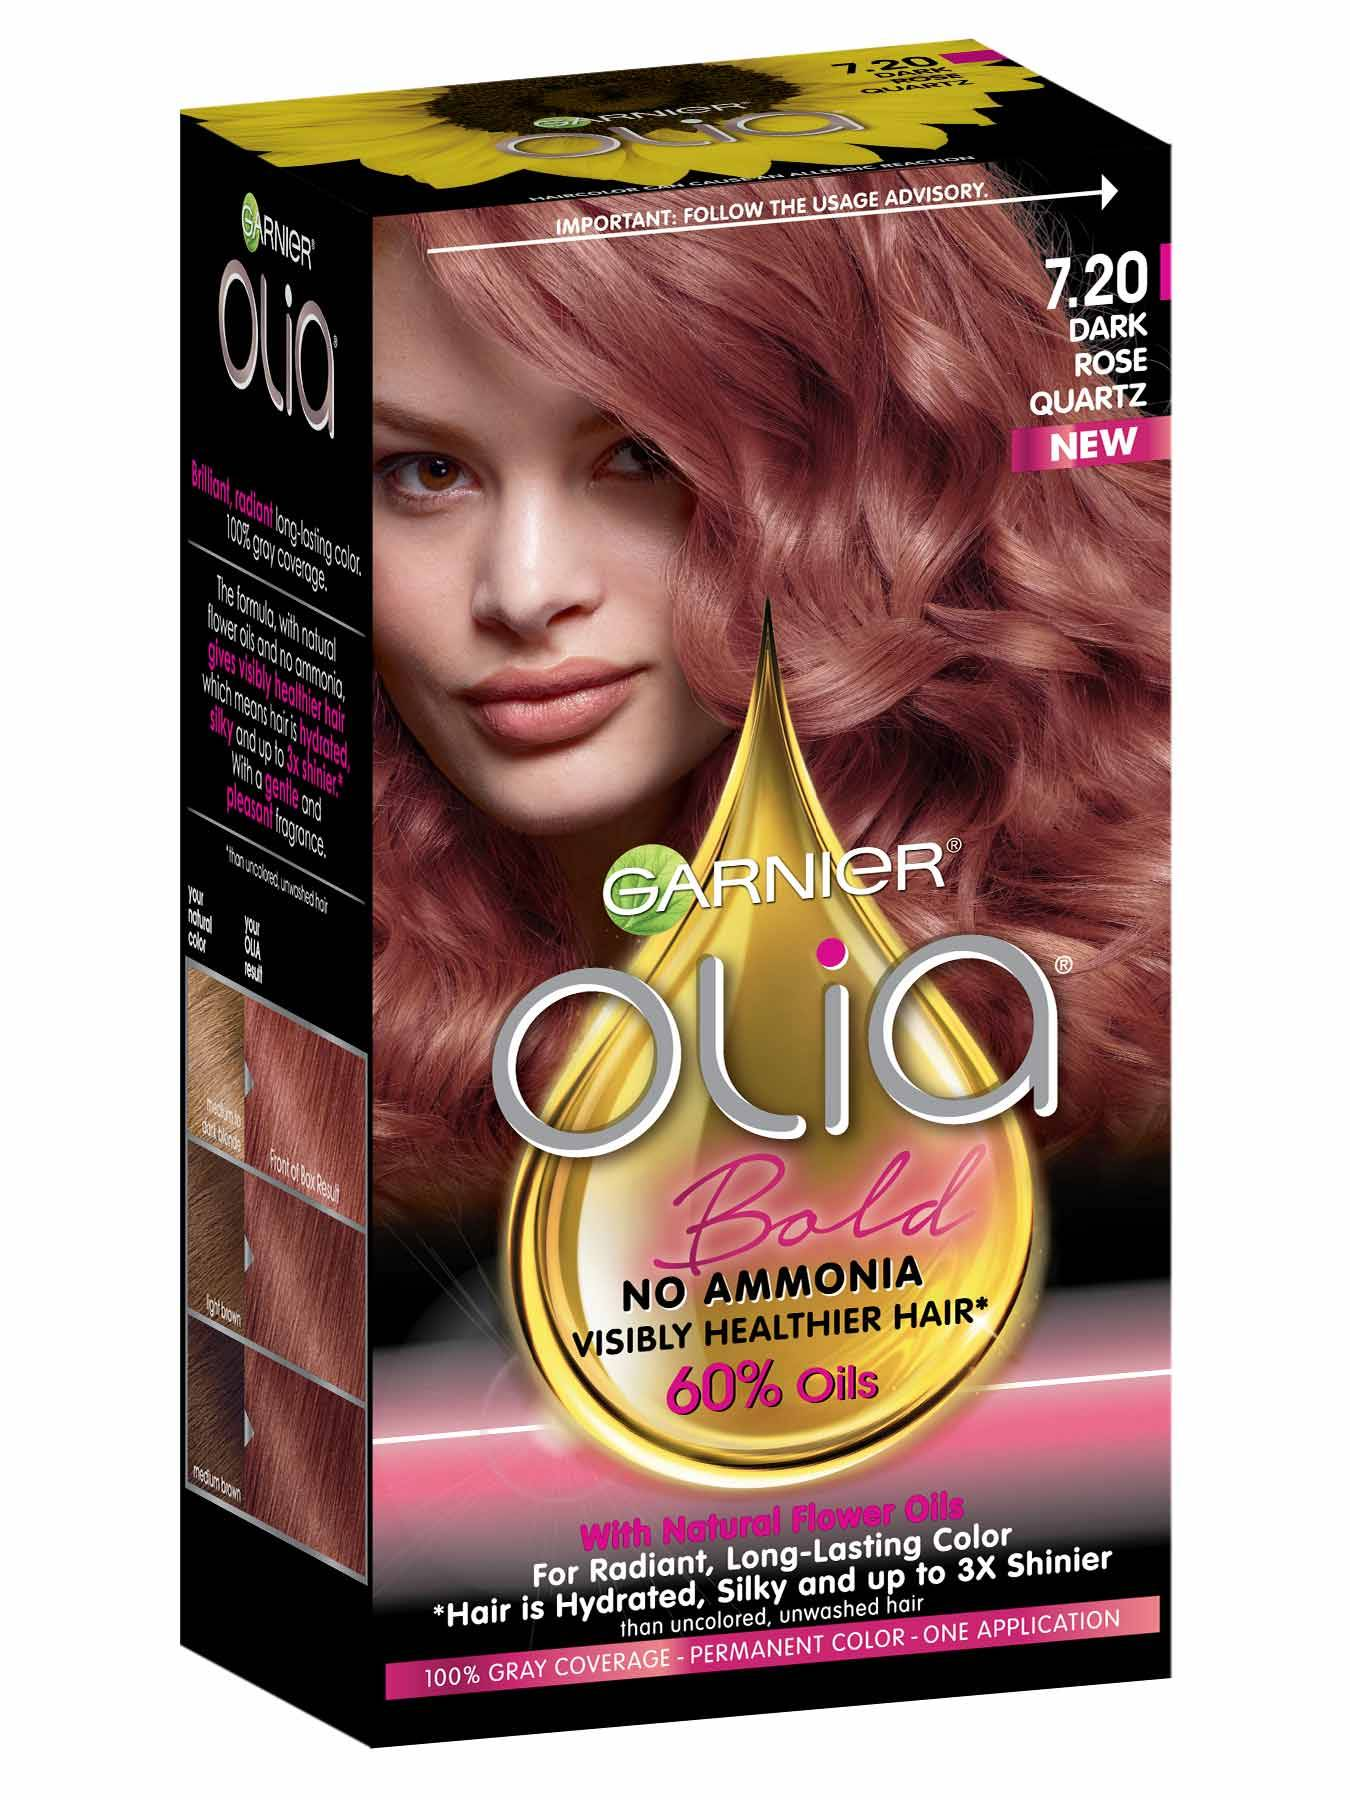 Olia Ammonia Free Permanent Medium Pearl Blonde Hair